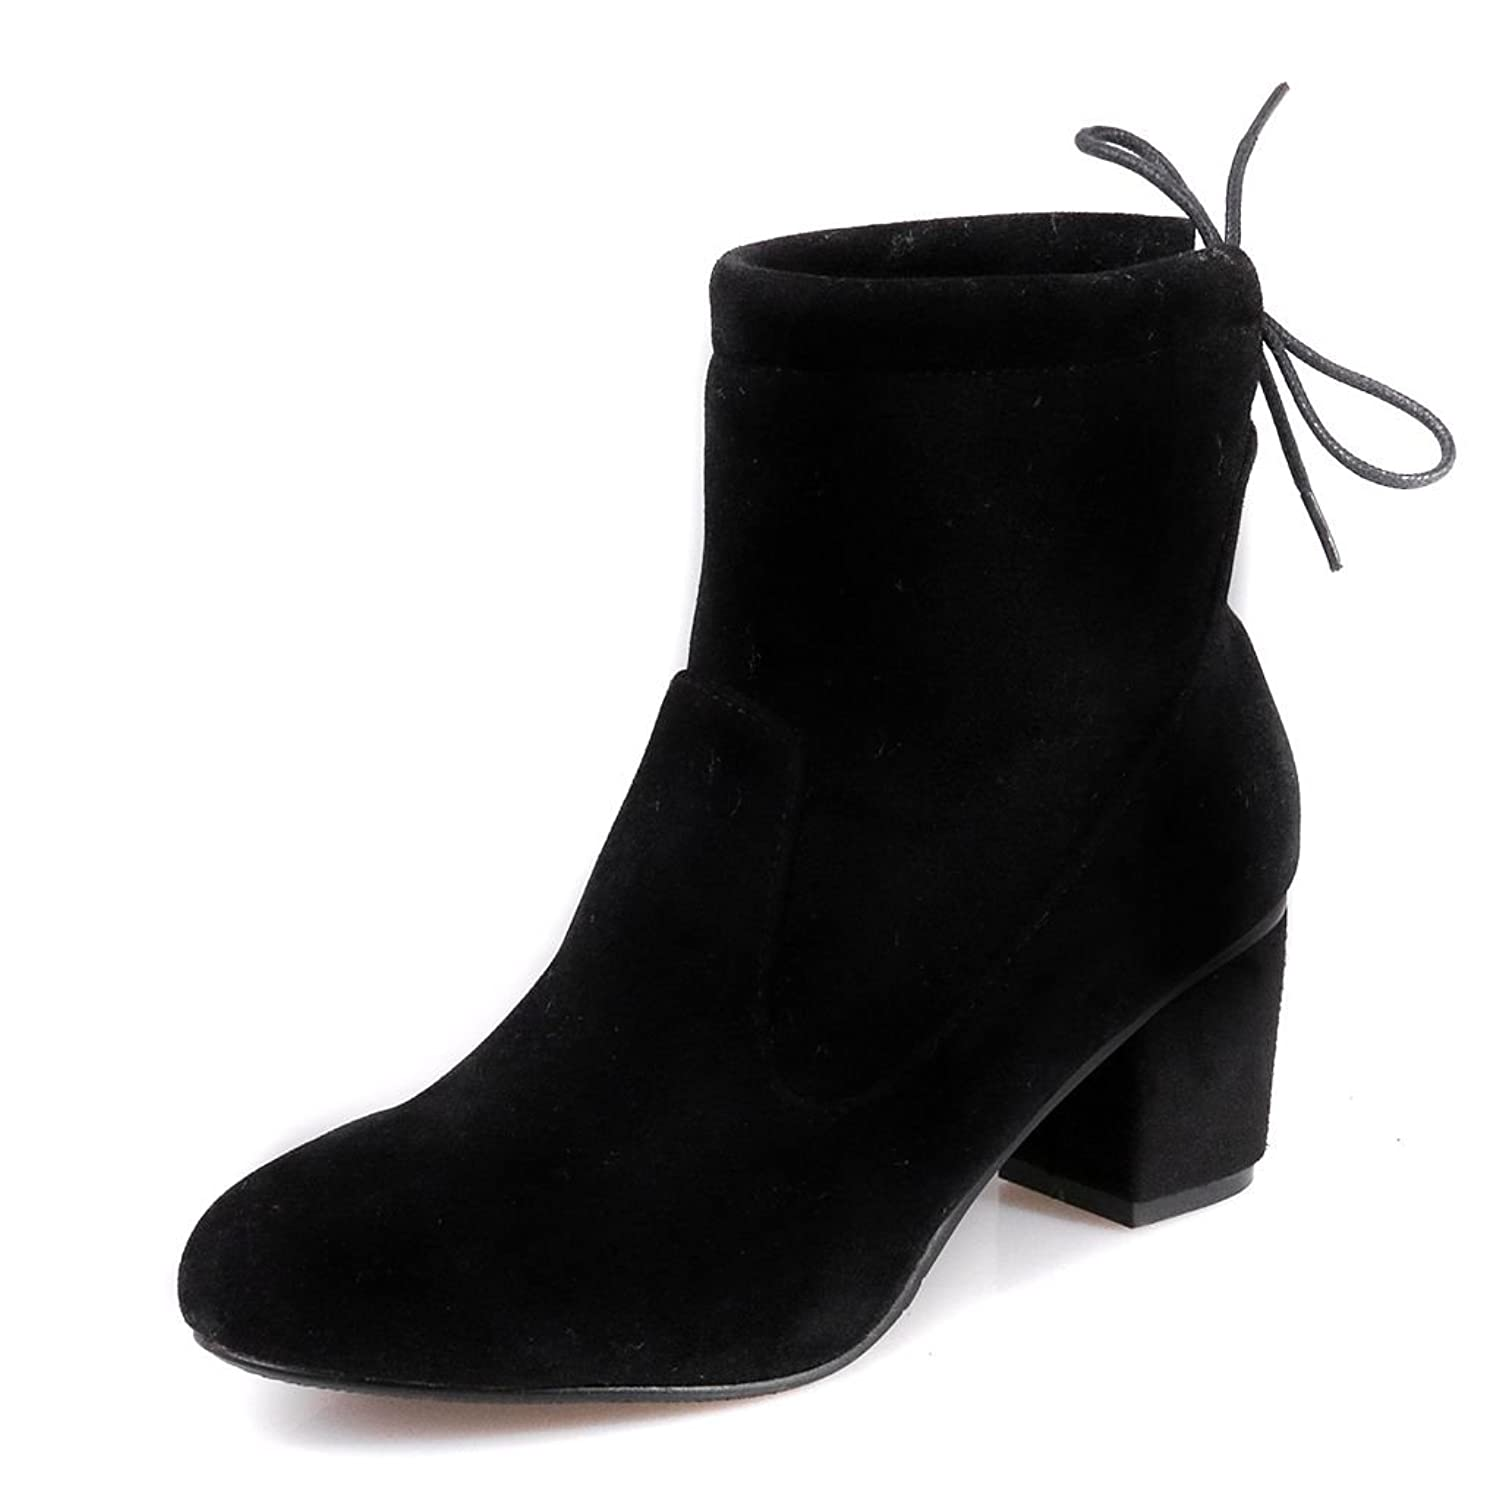 Kaloosh Women's Pointed Toe Block Low Heel Nubuck Leather Comfortable Ankle Boots 5RMRV